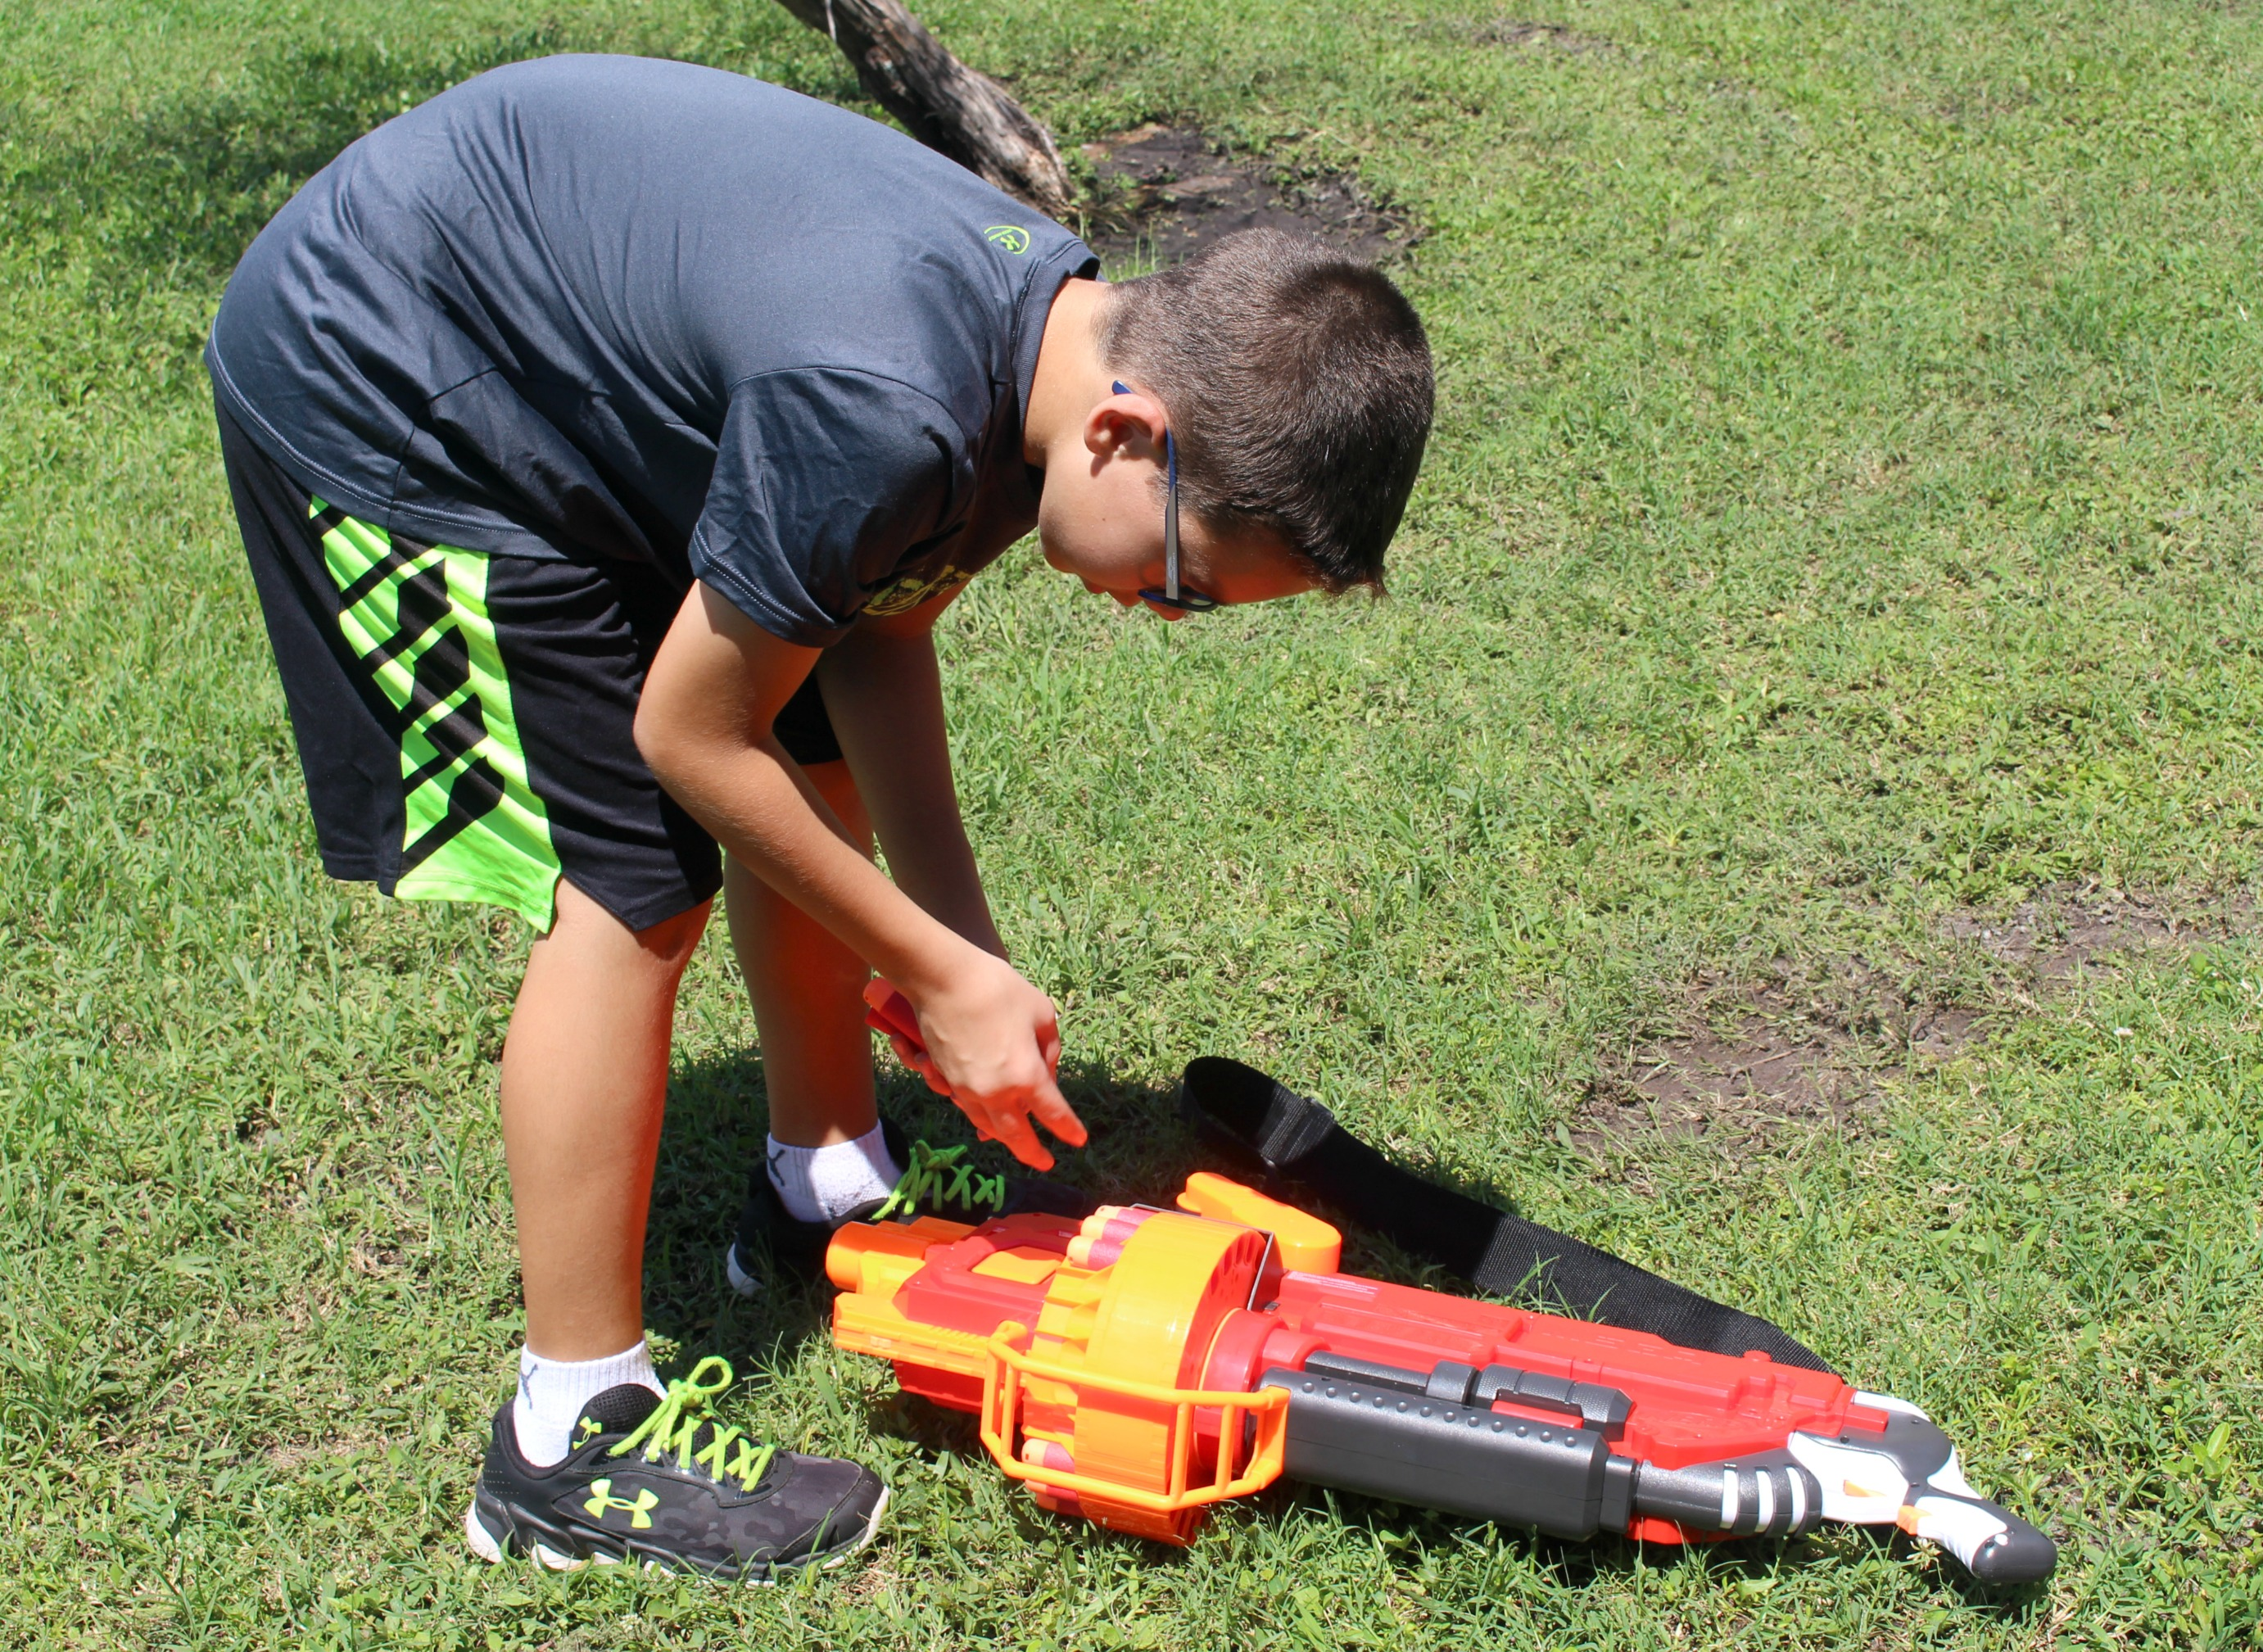 Nerf-Gun-Fight-Mega-Review-Giveaway-play-fun